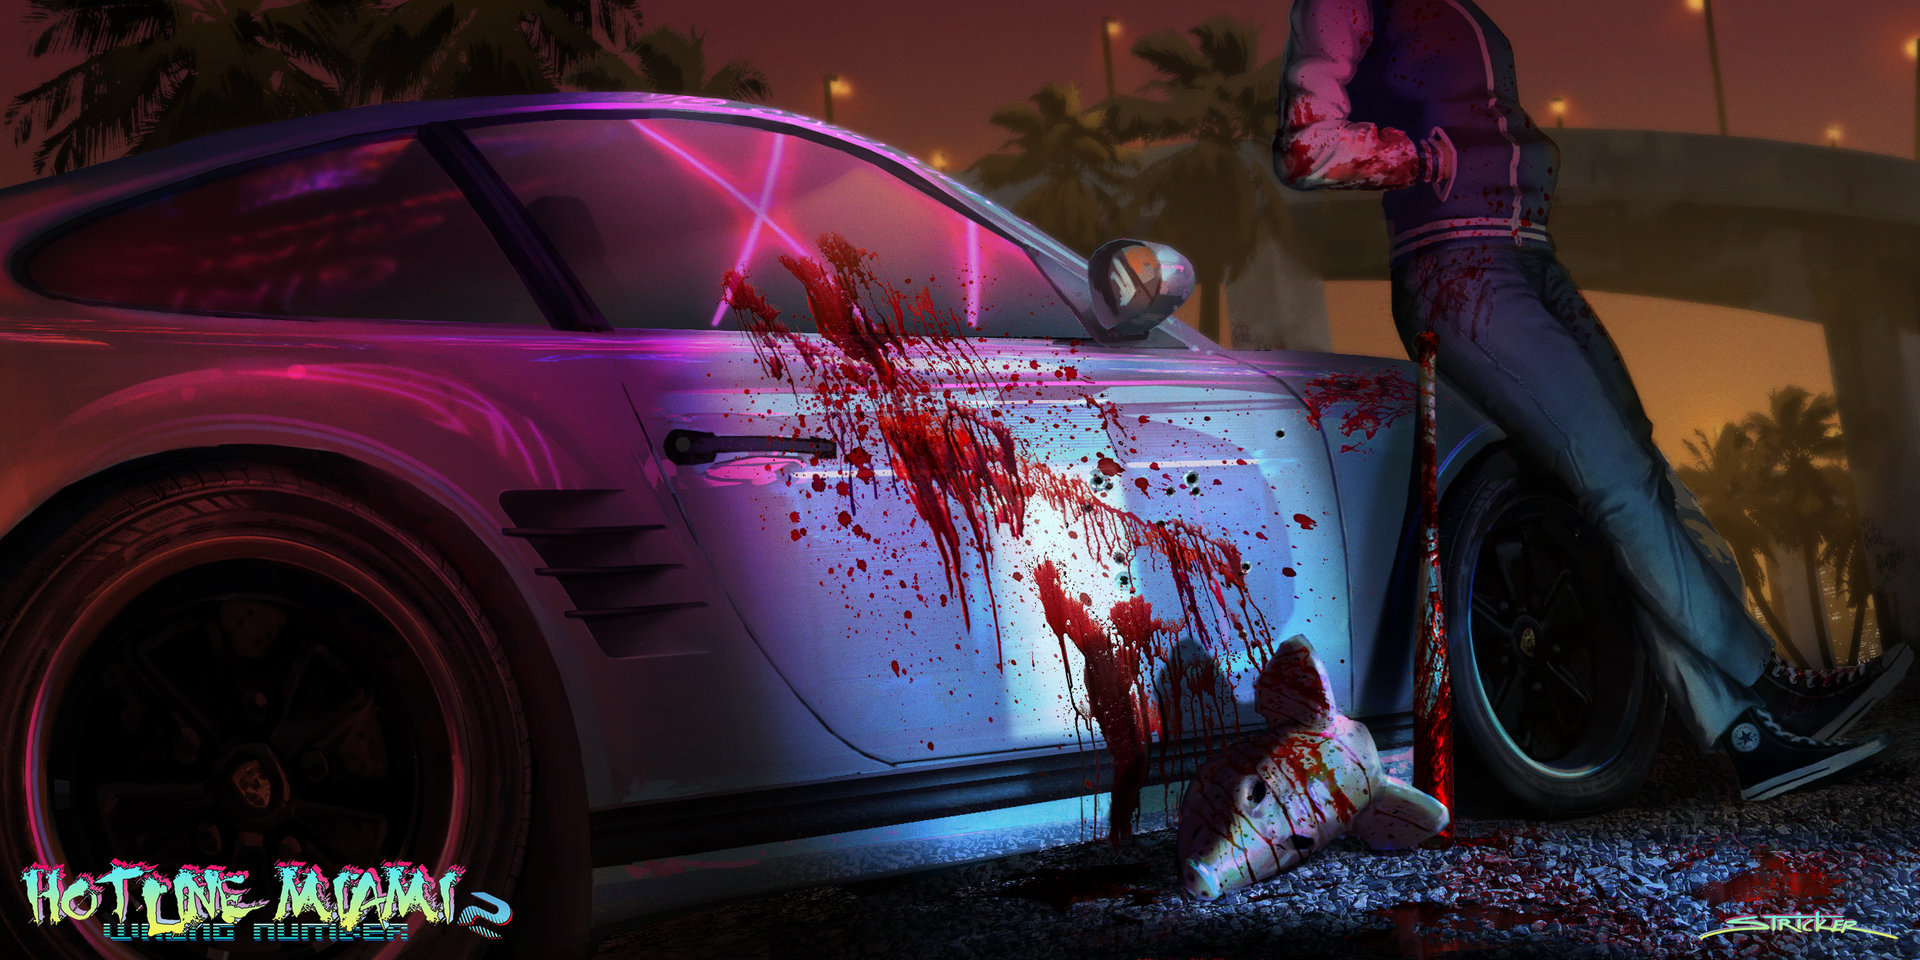 1920 Car Synthwave Wallpaper Artstation Hotline Miami 2 Wrong Number Fan Art Brandon